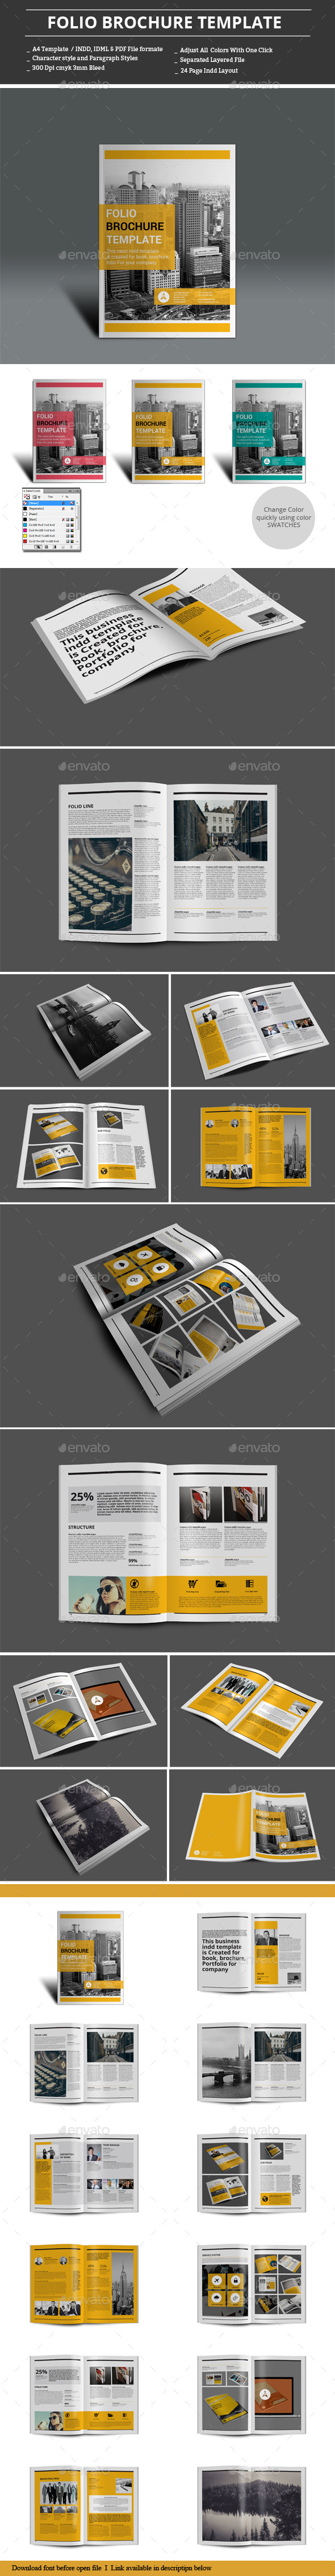 GraphicRiver Folio Brochure Templates 9337923